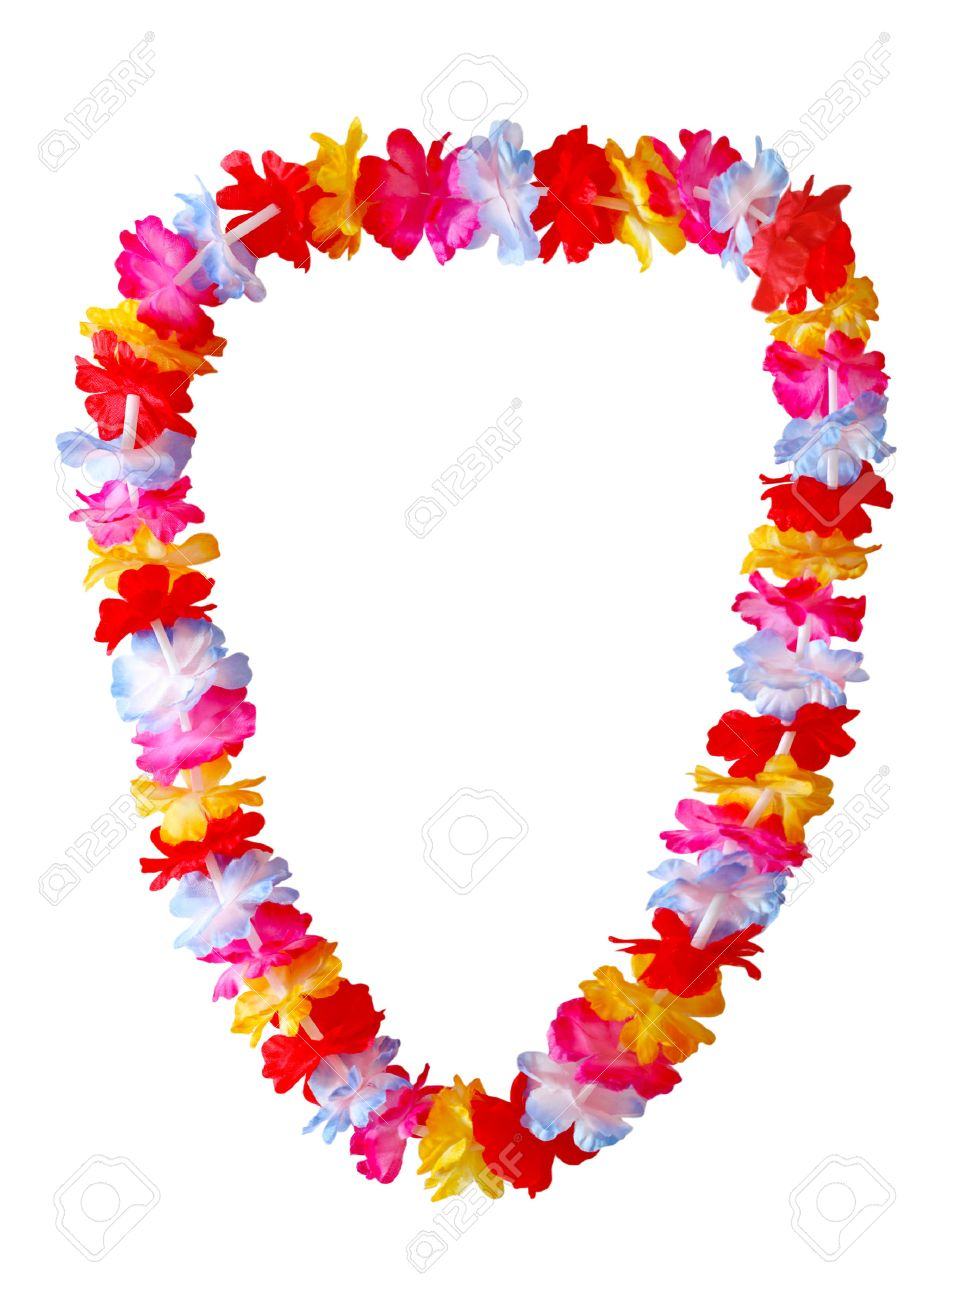 coloured hawaiian hawaii medallions jewellery com maskworld costume jewelry bunt english multi jewels products necklace hawai necklaces blumenkette accessories flower